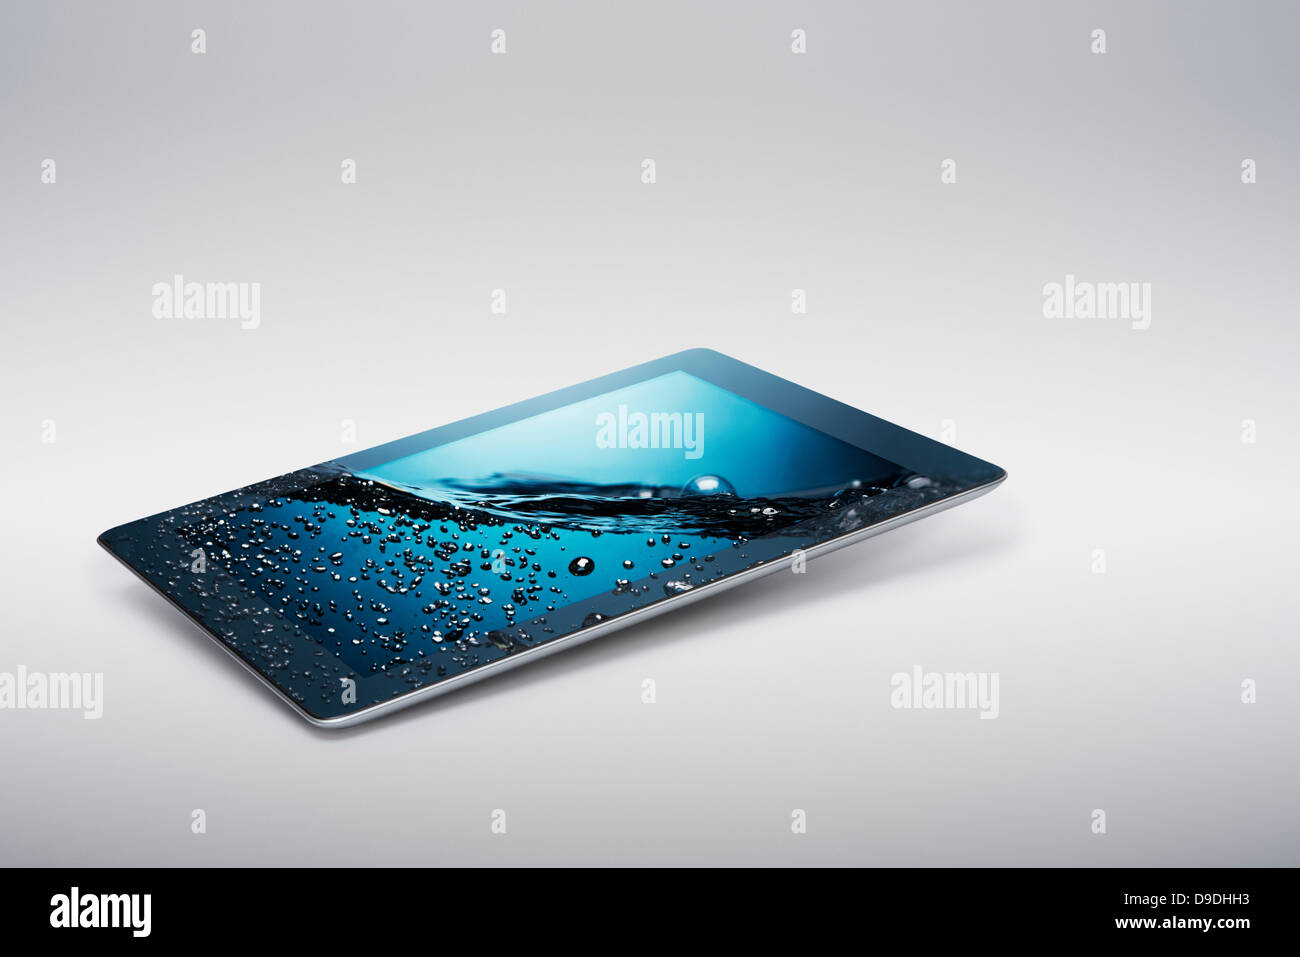 Digital tablet with gently rising bubbling water on screen - Stock Image